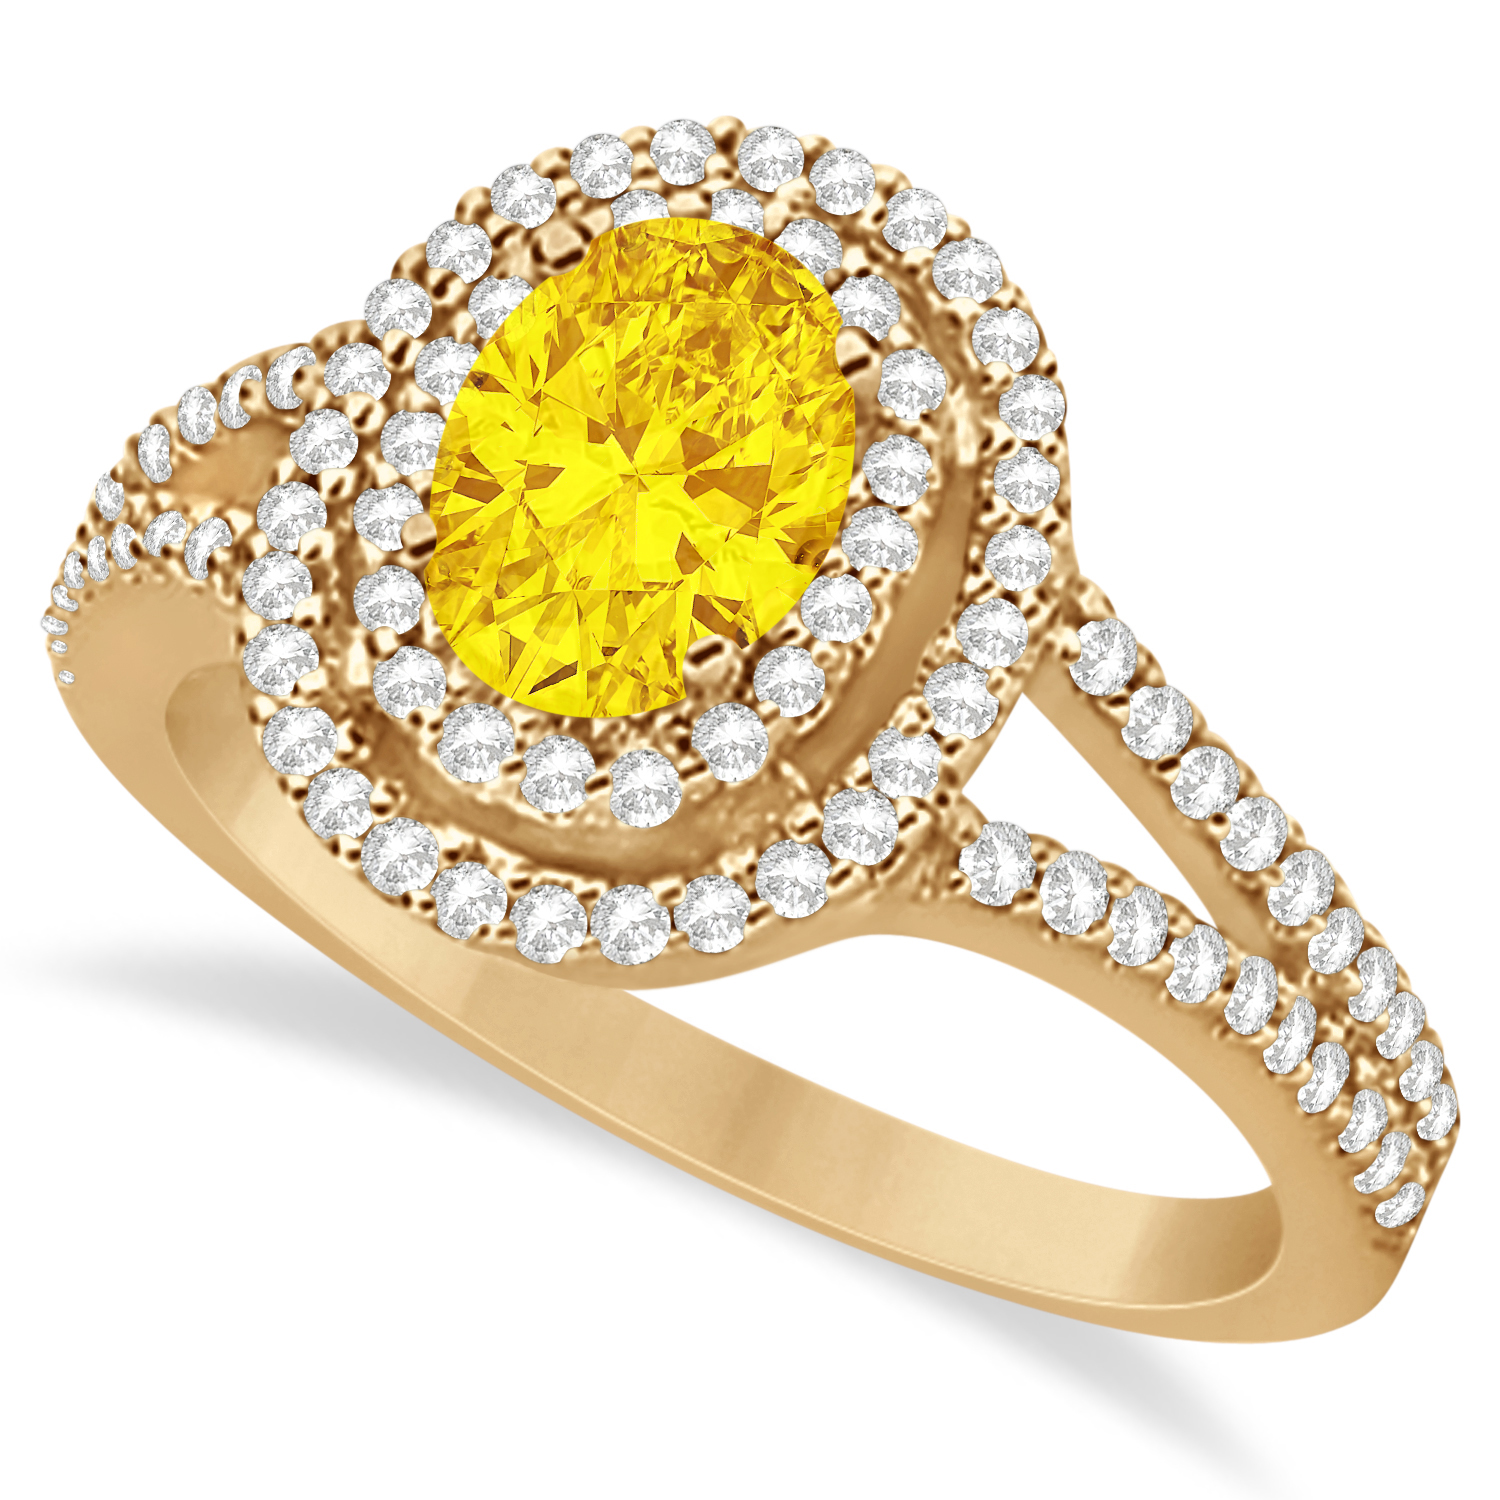 Double Halo Diamond & Yellow Sapphire Engagement Ring 14K Rose Gold 1.34ctw